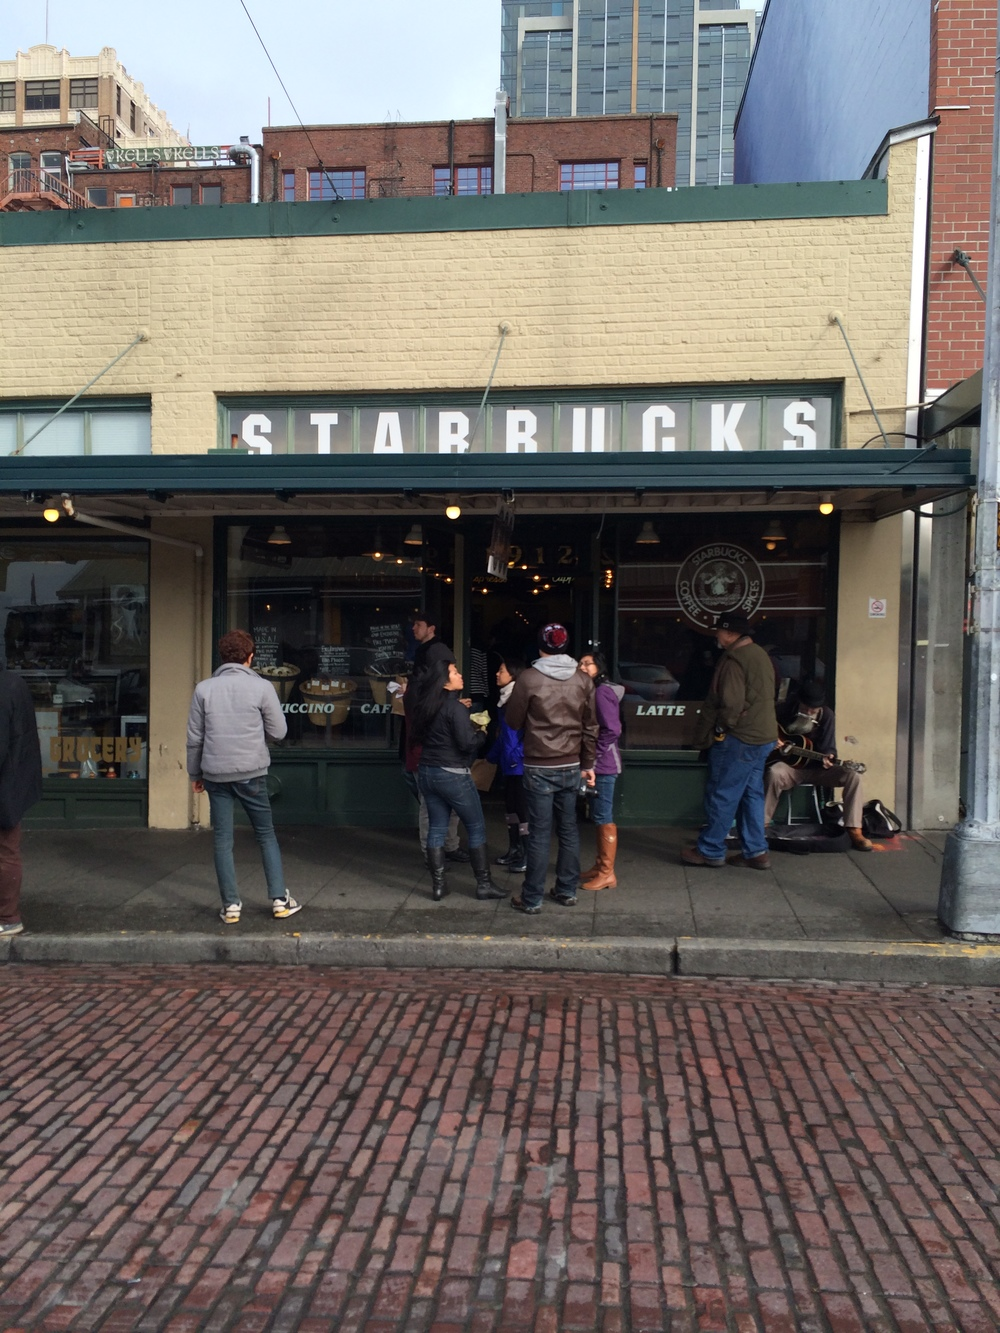 Paid a visit to the world's very 1st Starbucks!